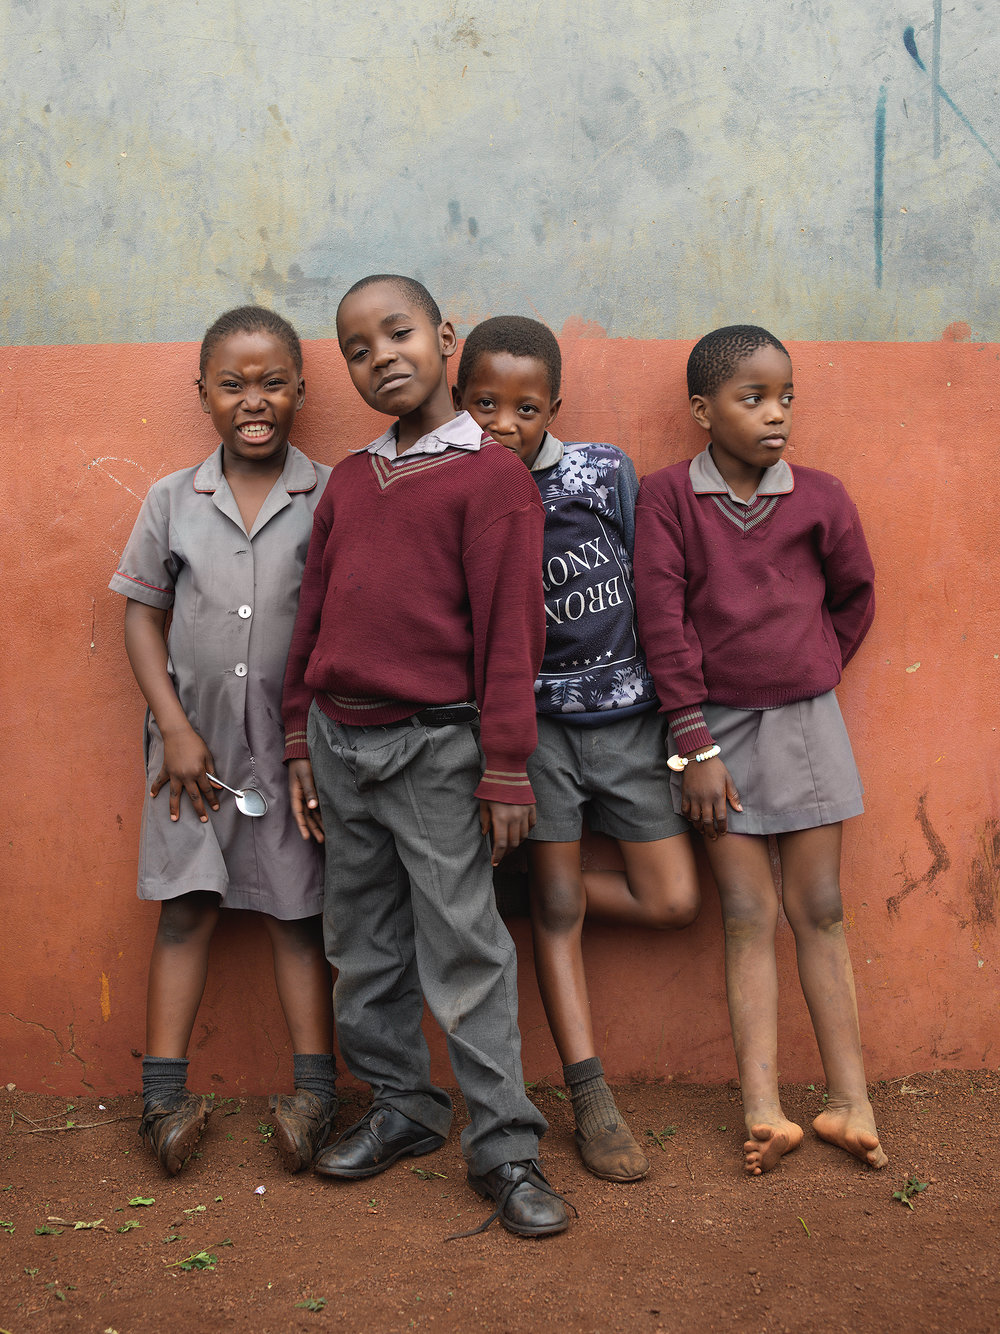 Portrait series for Star for Life, an organization fostering success for South Africa students.